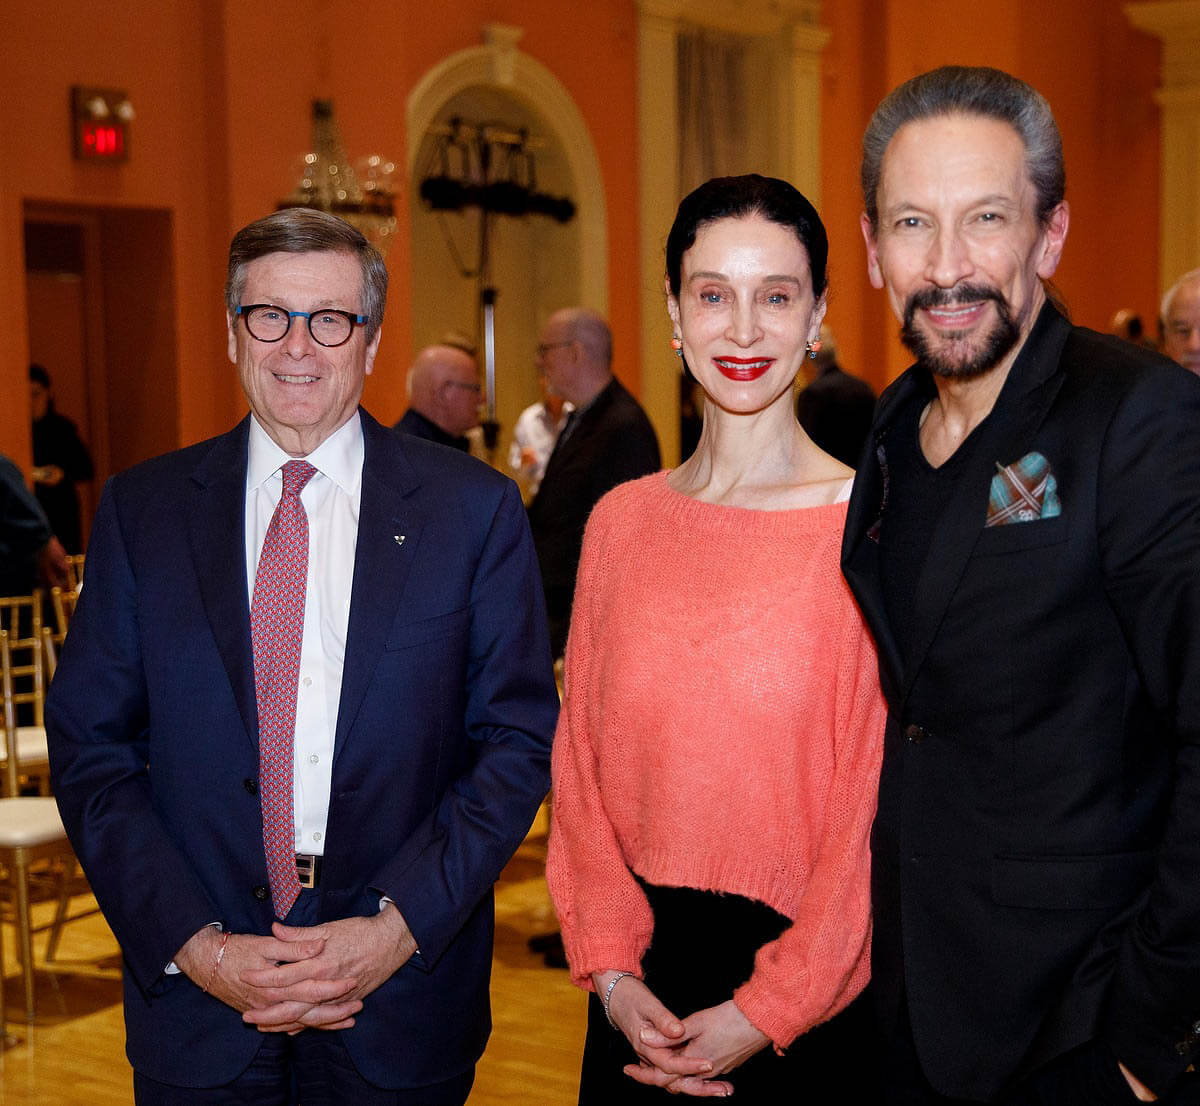 Mayor John Tory with OA Co-Artistic Directors Jeannette Lajeunesse Zingg and Marshall Pynkoski (Image courtesy of Opera Atelier)